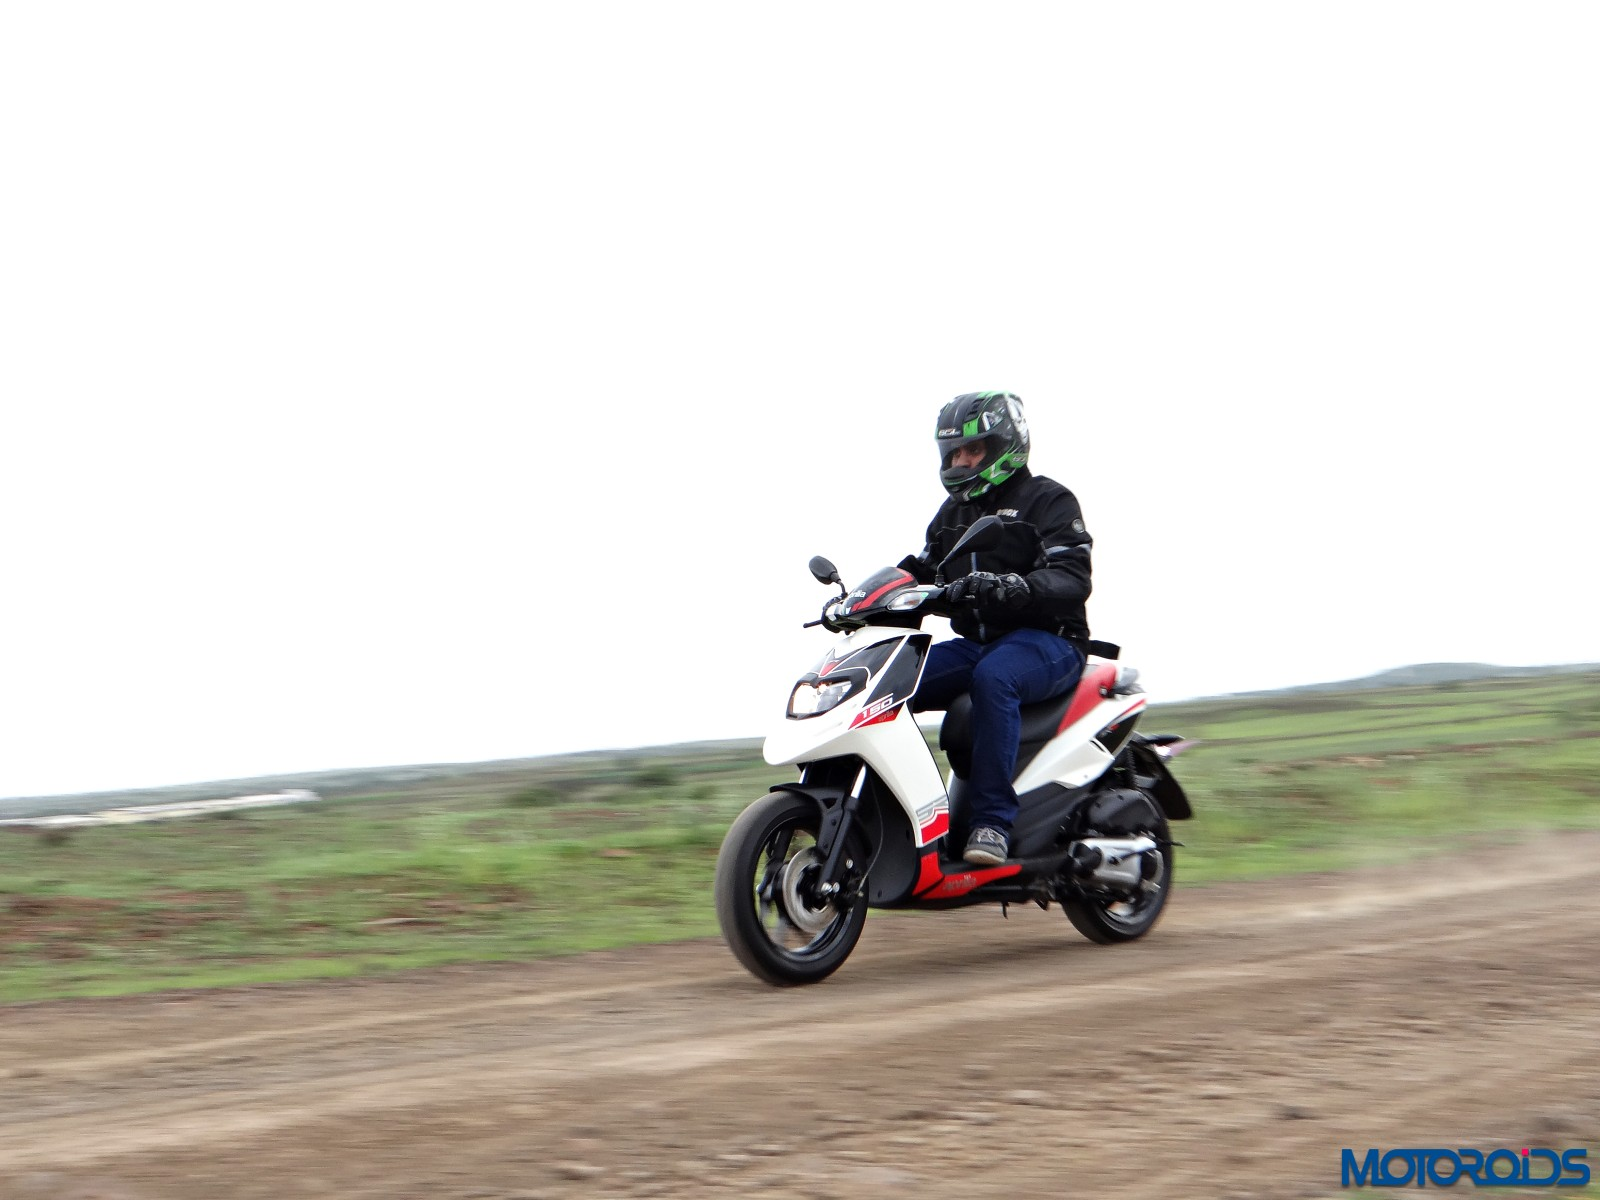 Aprilia SR 150 Review - Action Shots (3)